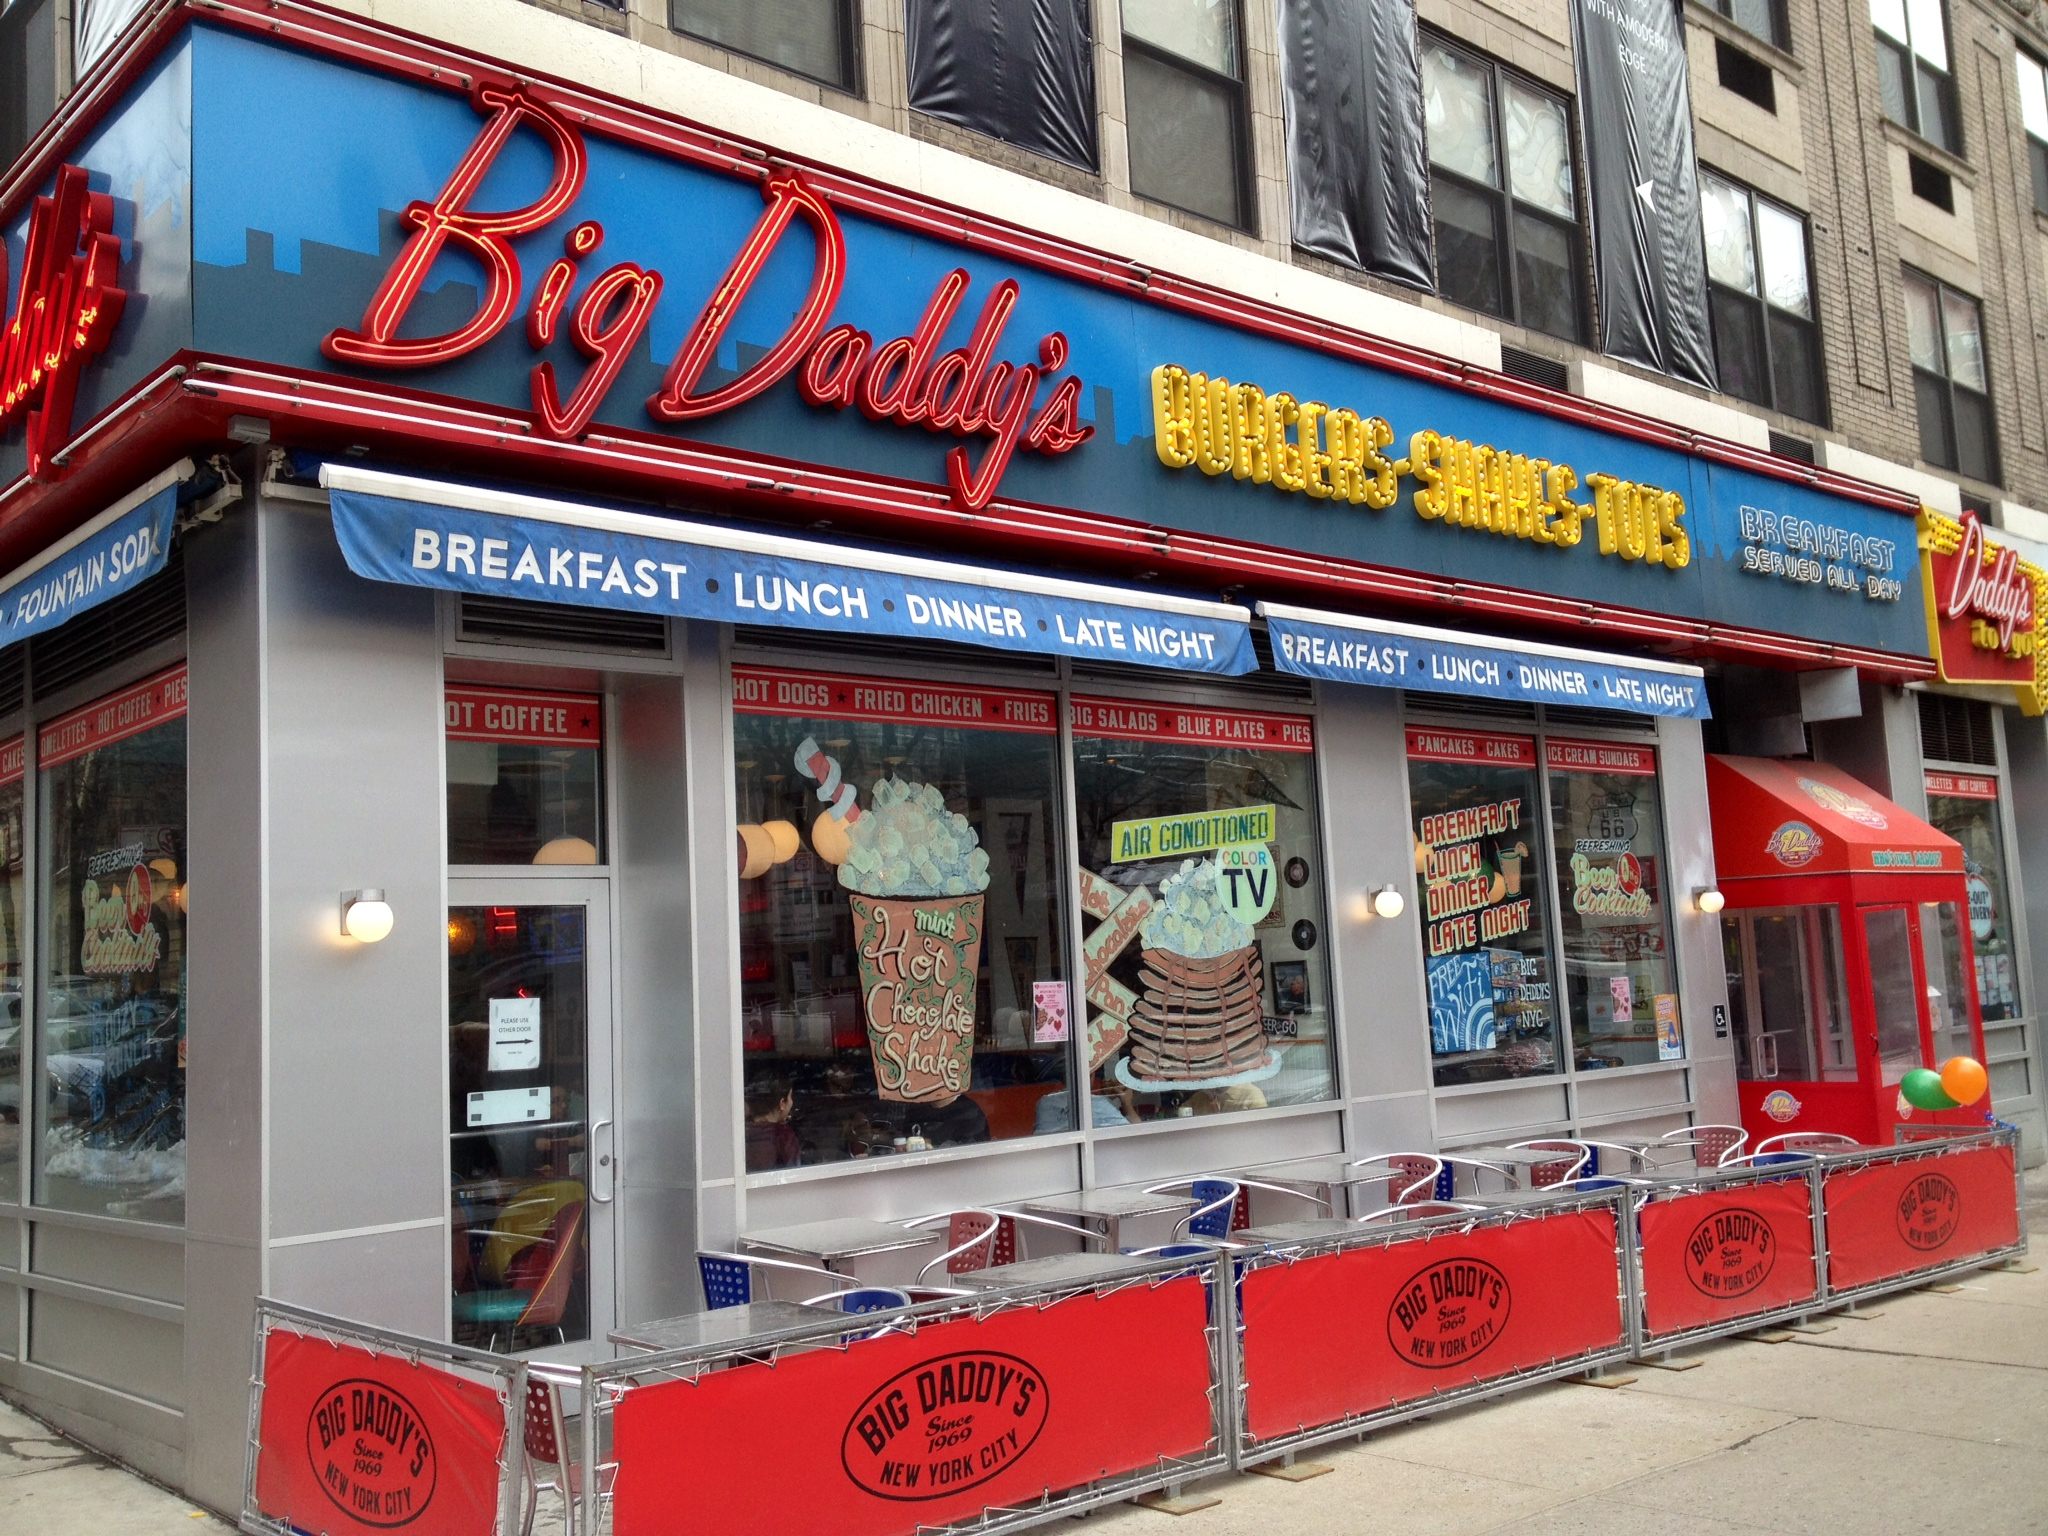 Welcome to Big Daddy's!